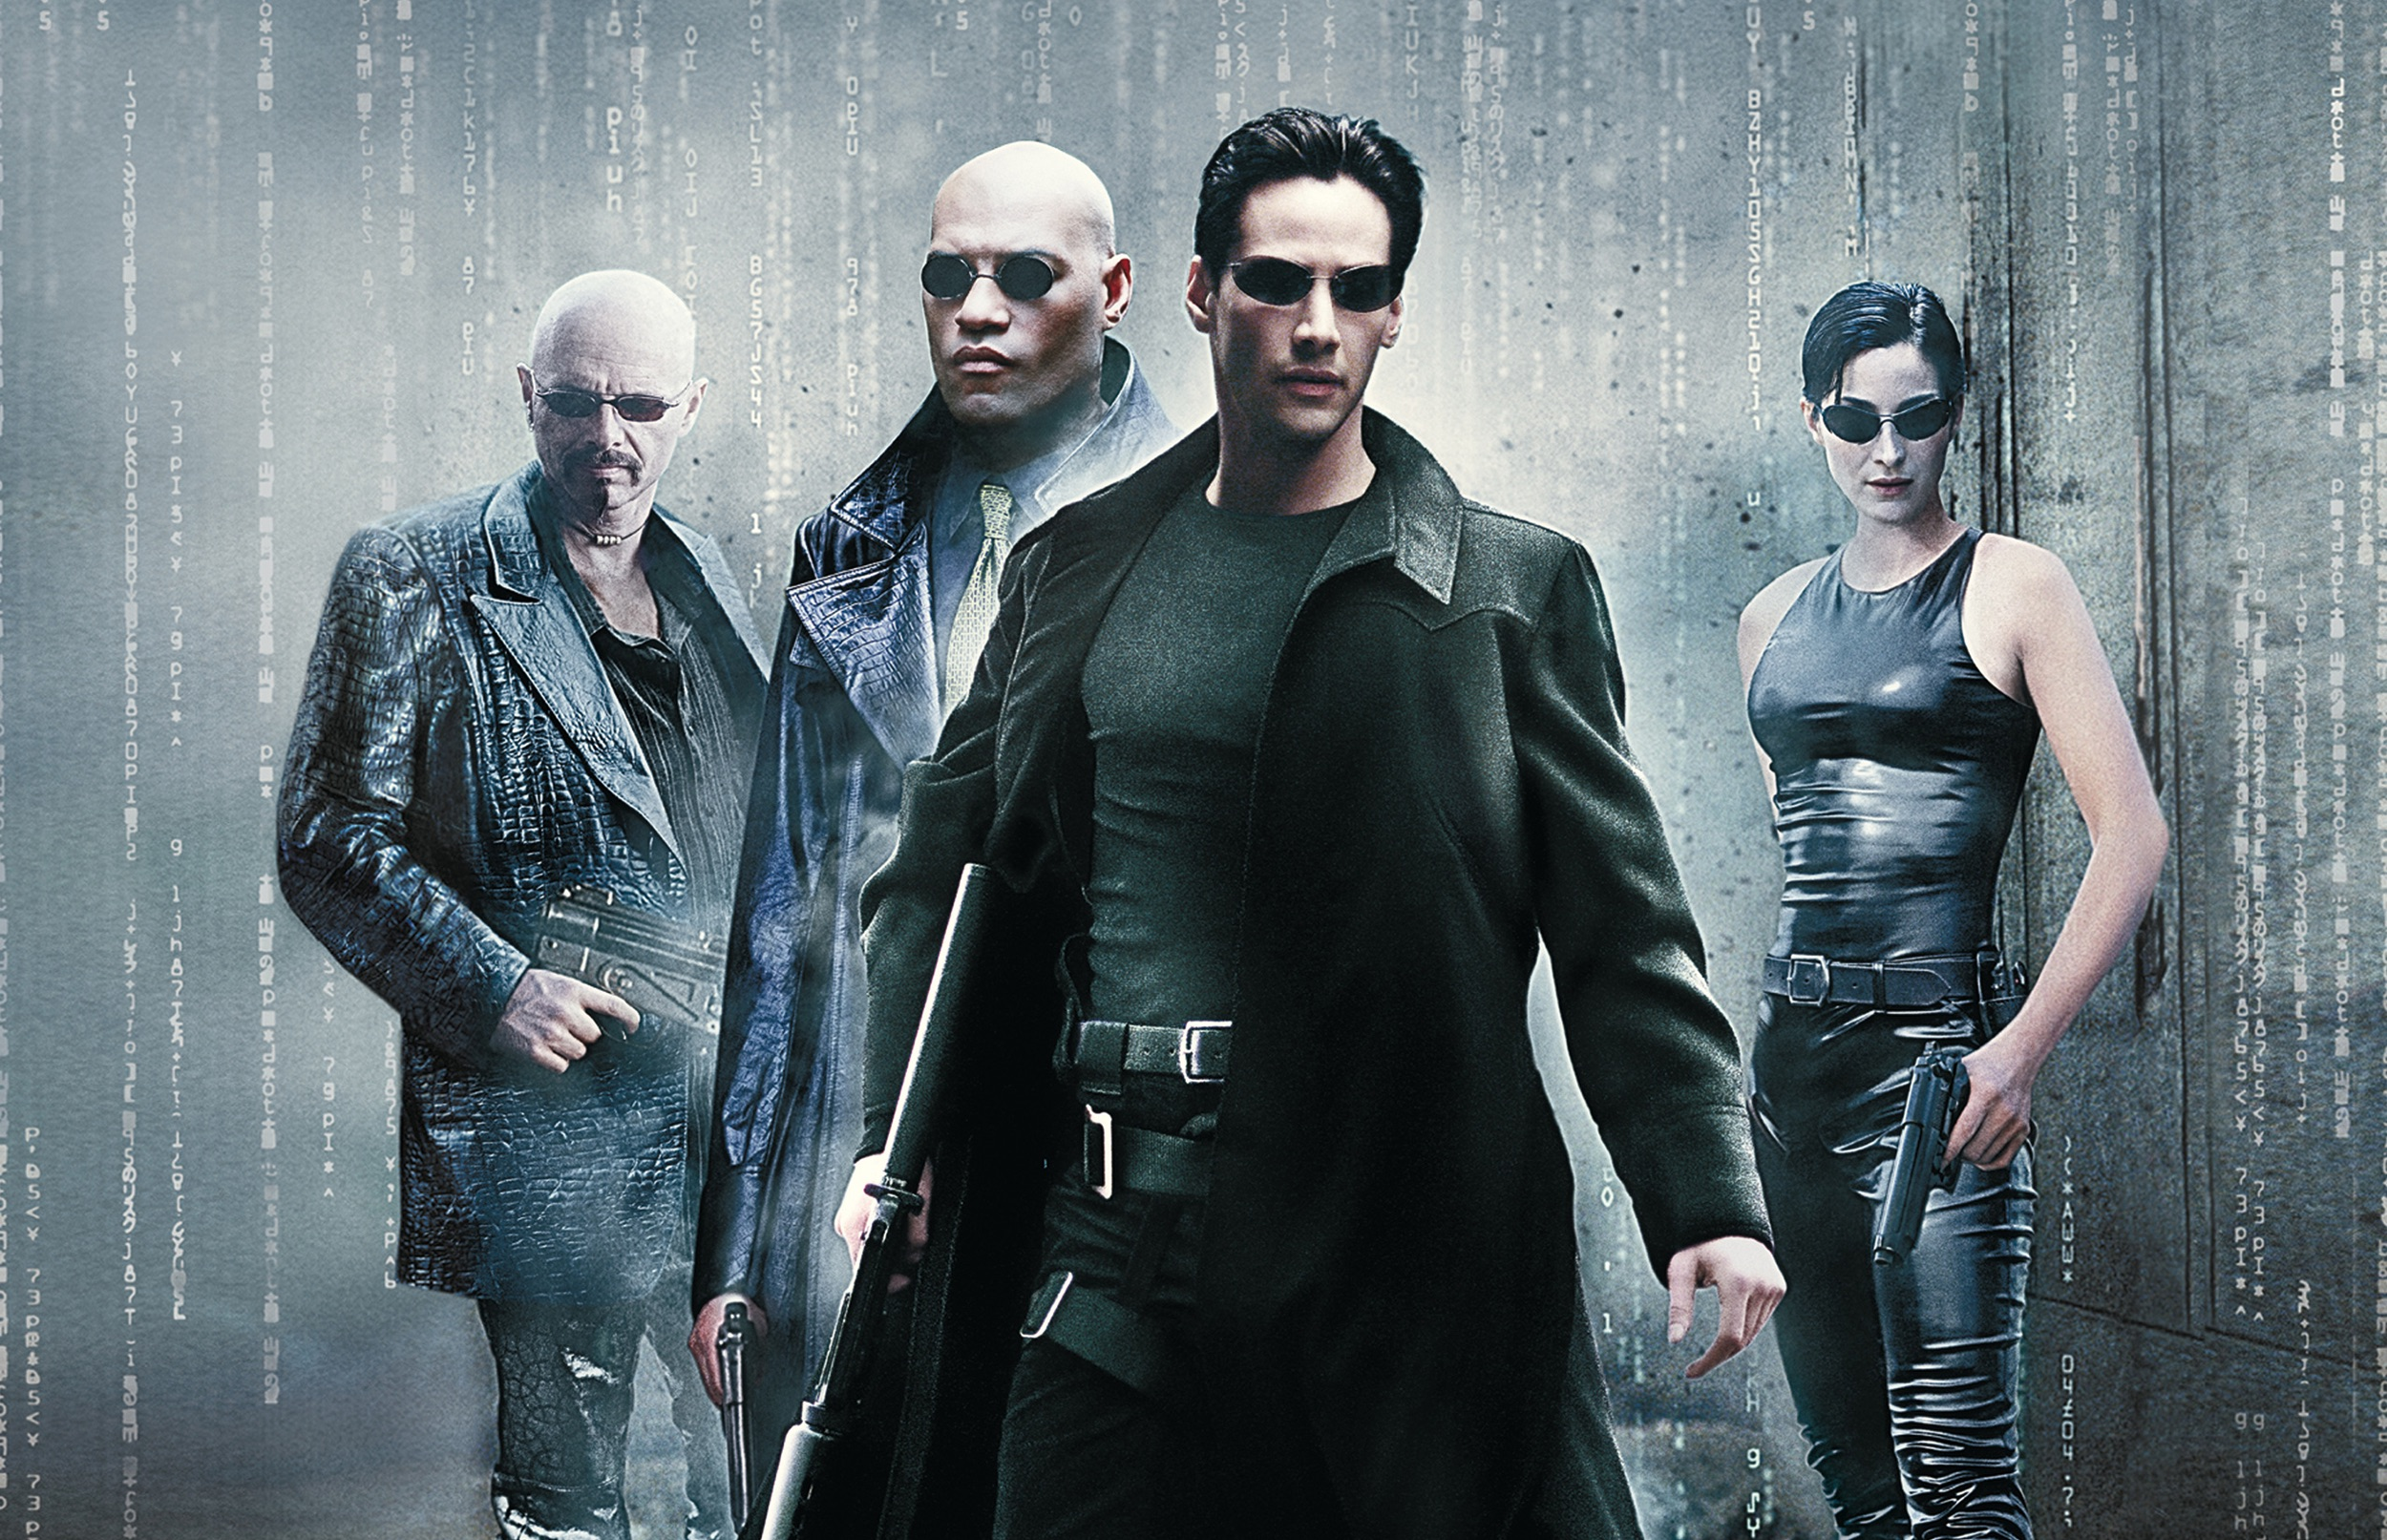 Lilly Wachowski reveals why she didnt direct the Matrix 4